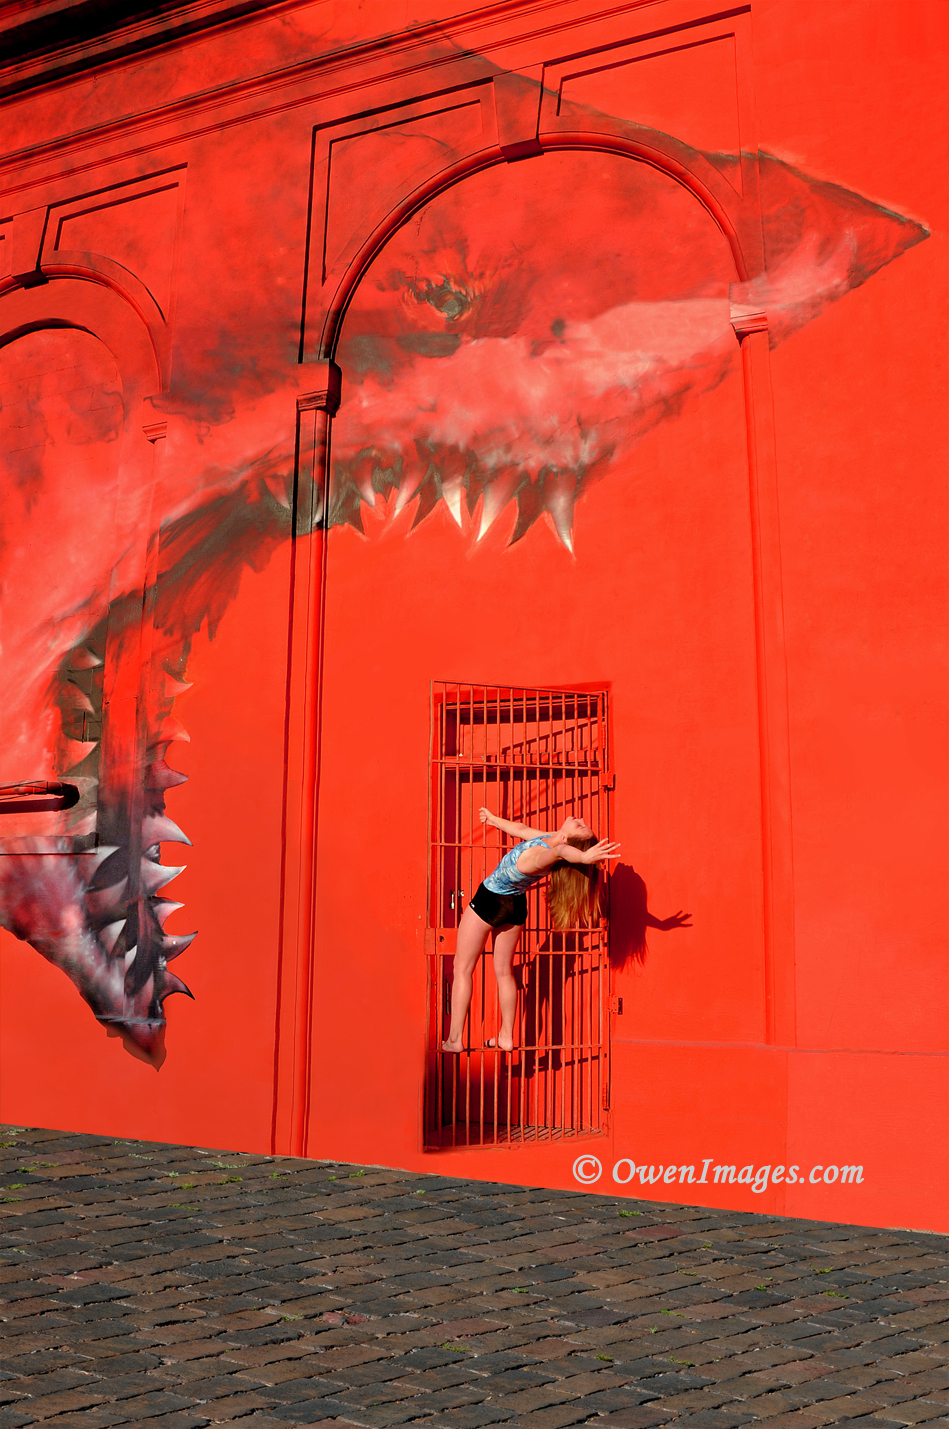 Gymnast about to be eaten by the Shark mural in downtown St Petersburg, Florida